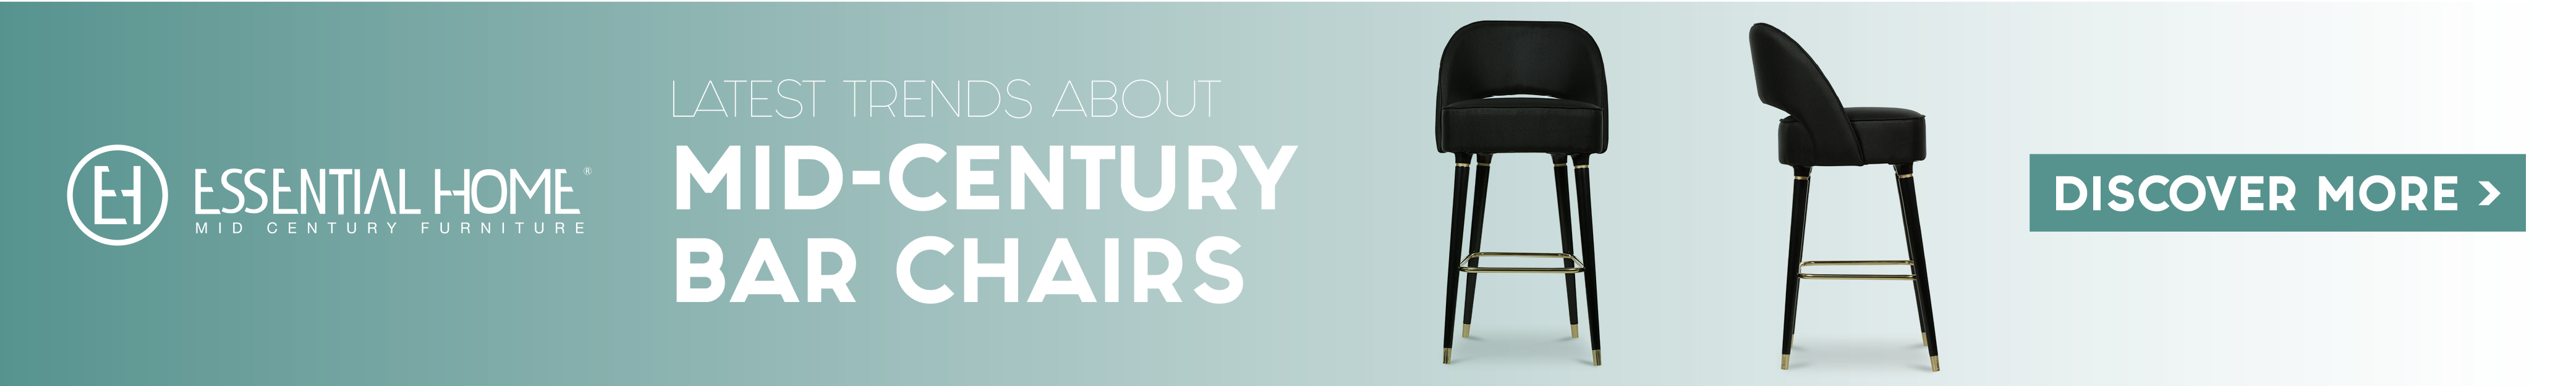 eh-collins-bar-chair best interior designers Discover The 20 Best Interior Designers In Toronto Product EH4 1